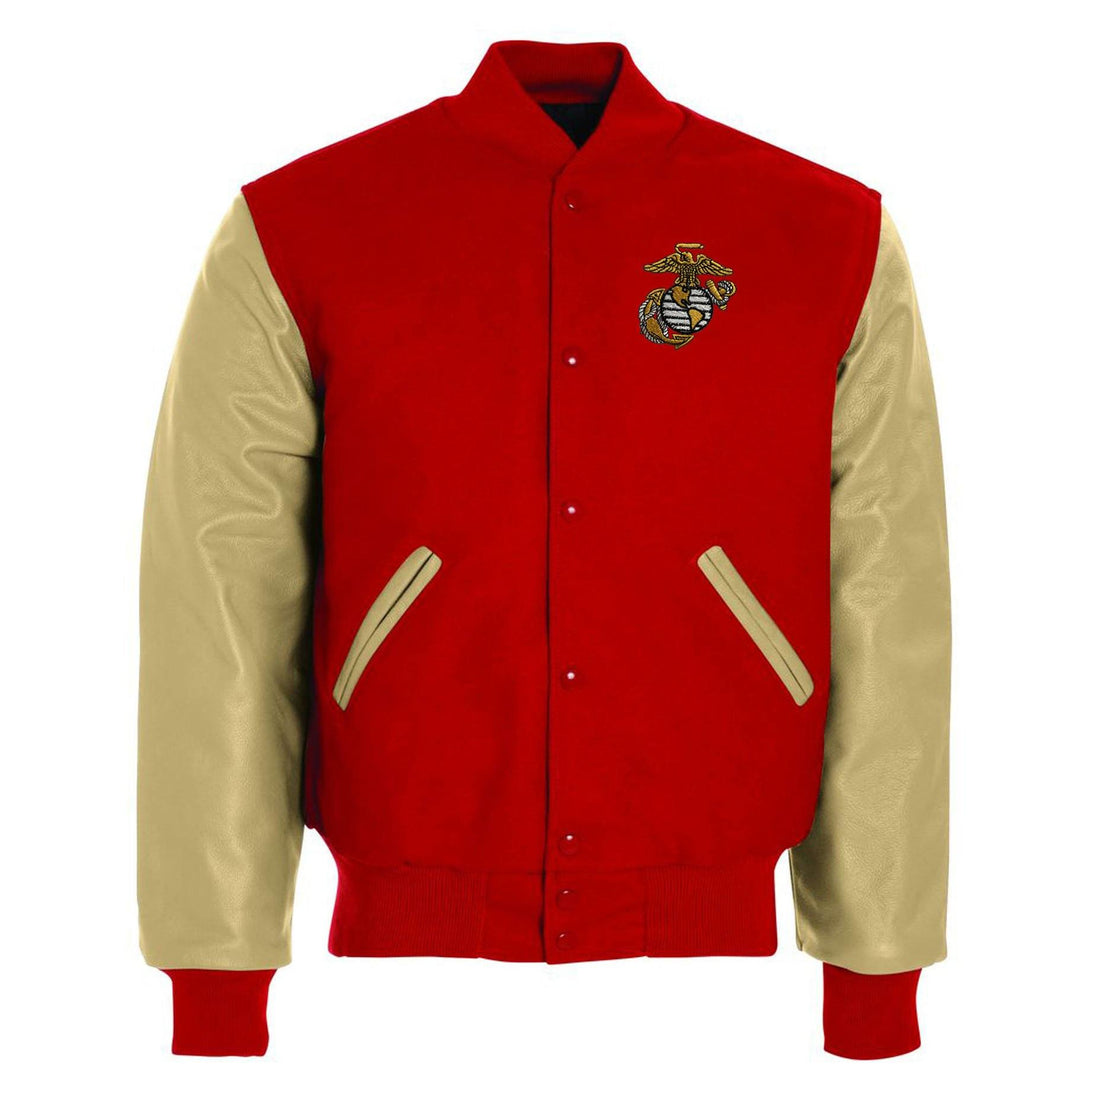 Front view of the red and cream colored USMC jacket from Marine Corps Direct with available custom embroidering.